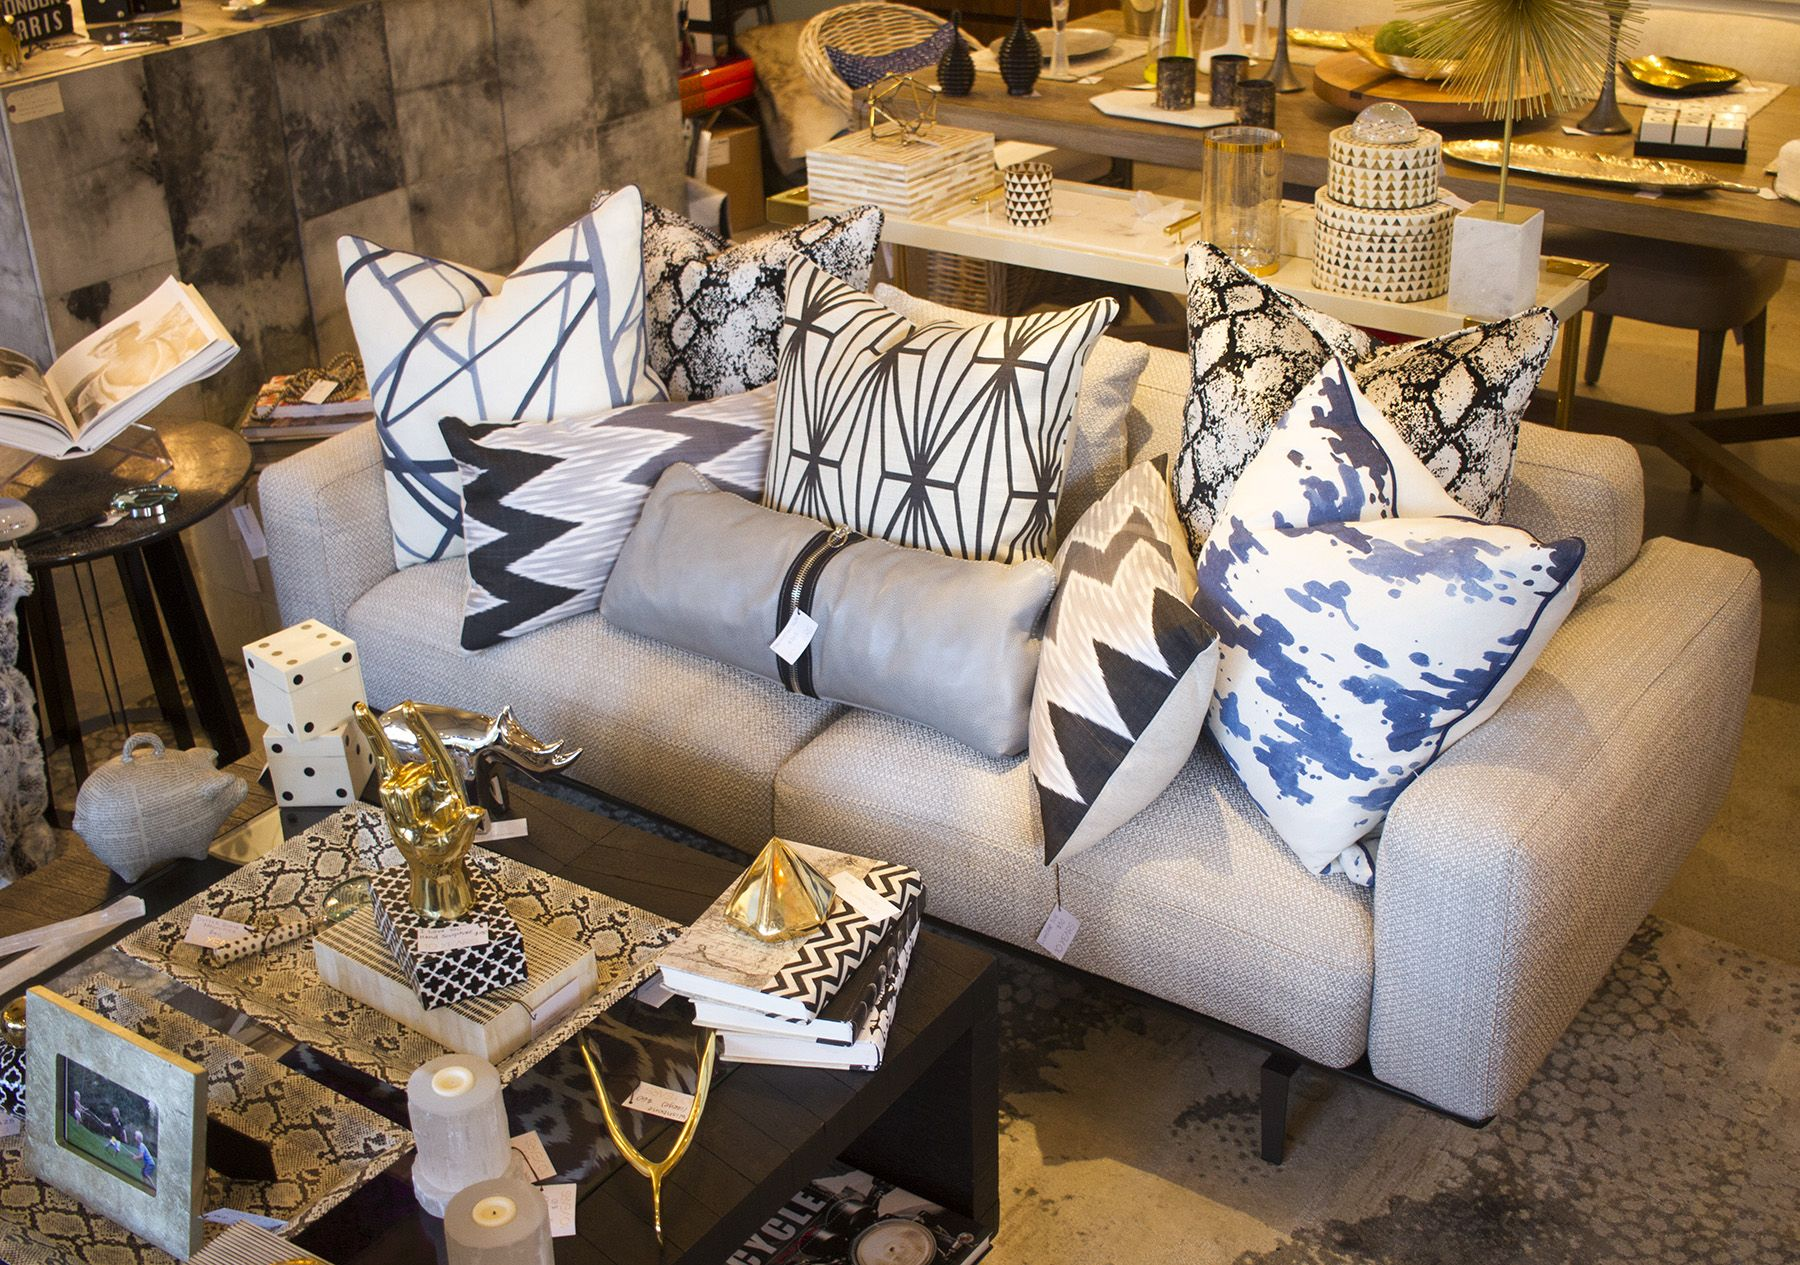 Remarkable Sofa Throw Pillows At Vanillawood Interior Design Boutique Bralicious Painted Fabric Chair Ideas Braliciousco